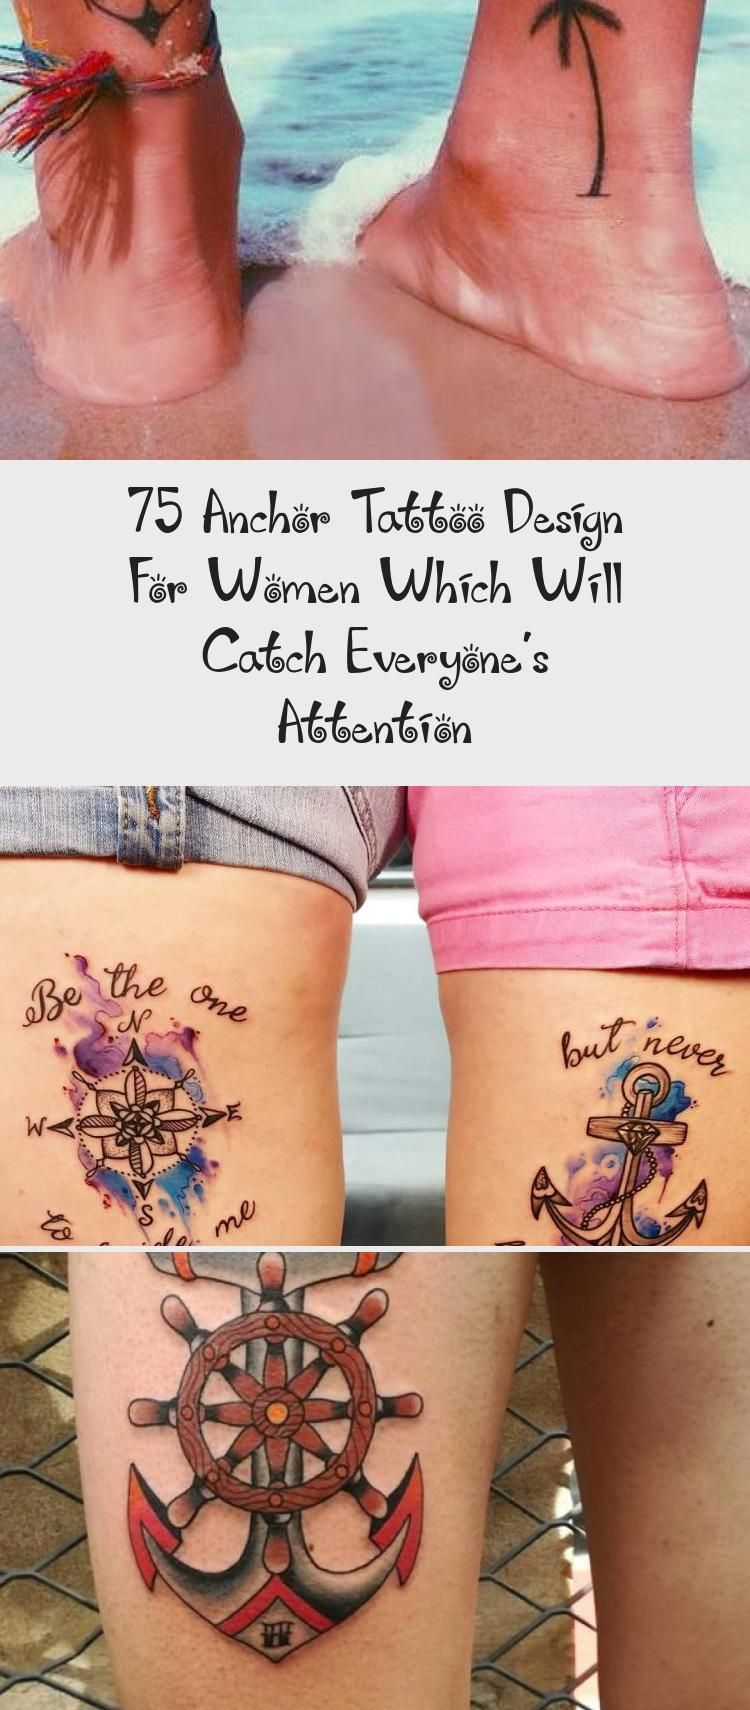 75 Anchor Tattoo Design for Women which will catch everyone's attention - Vogueitude